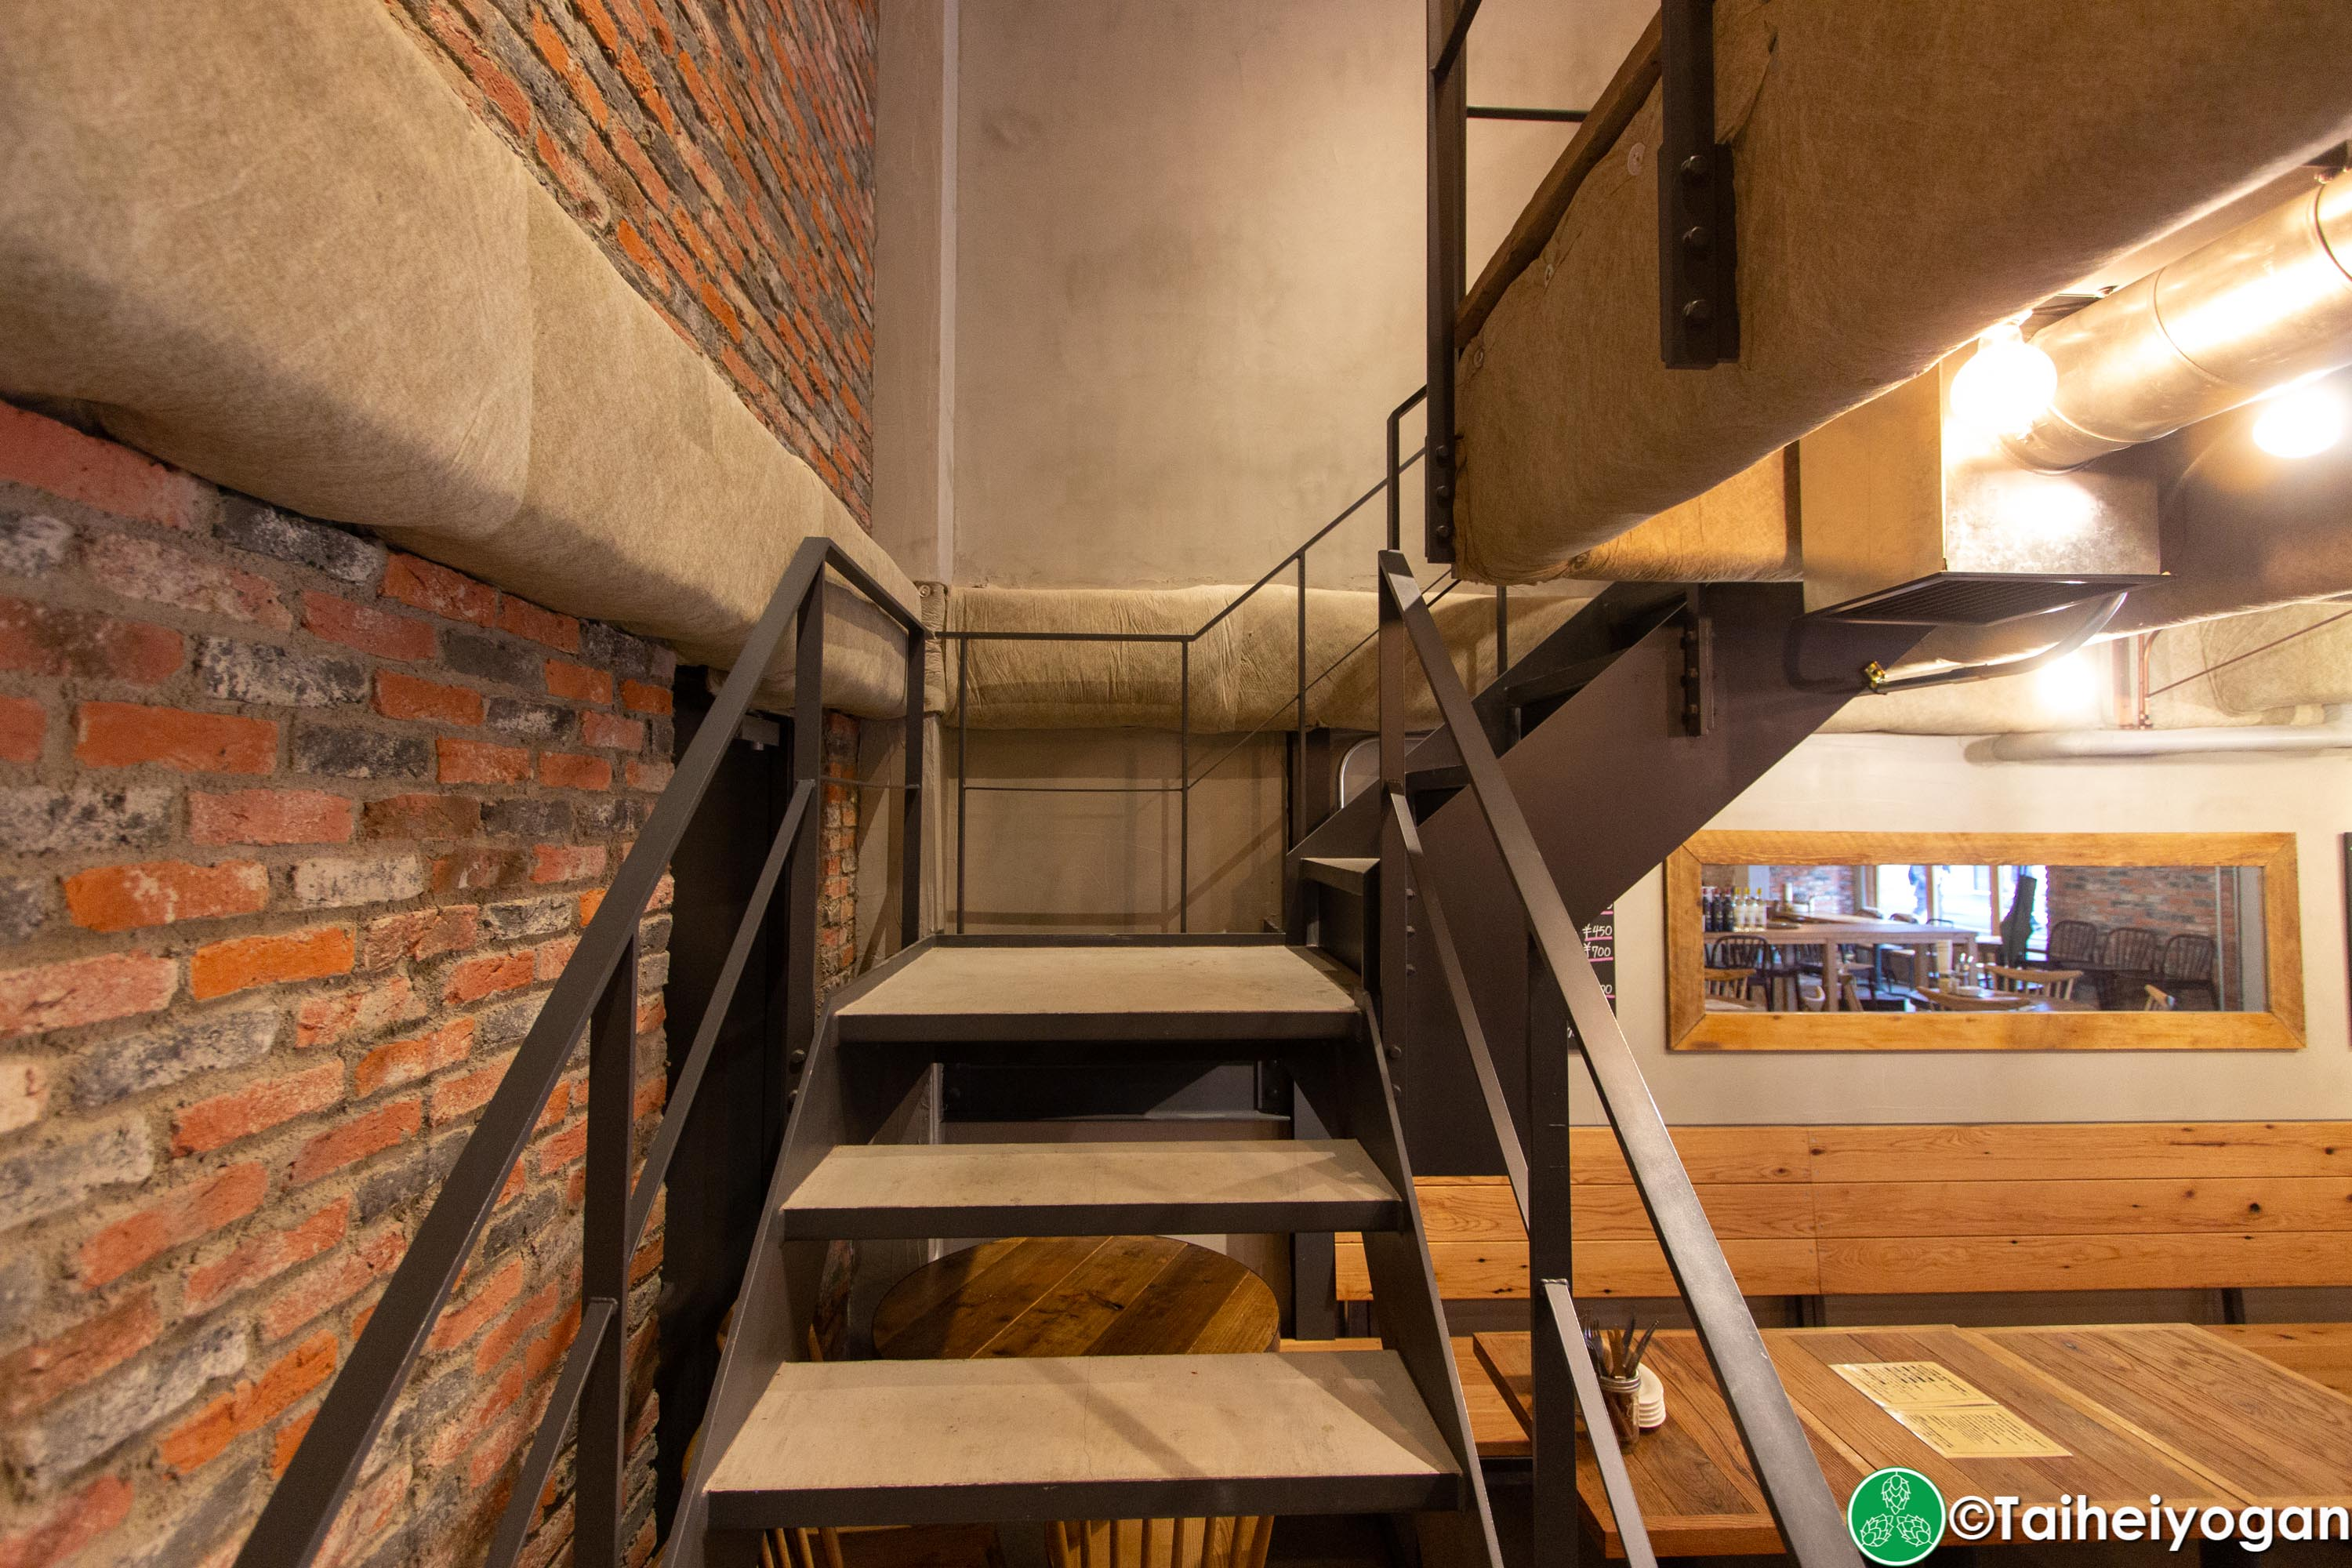 Tokyo Butchers & Okachi Beer Lab - Interior - Stairs to Party Room